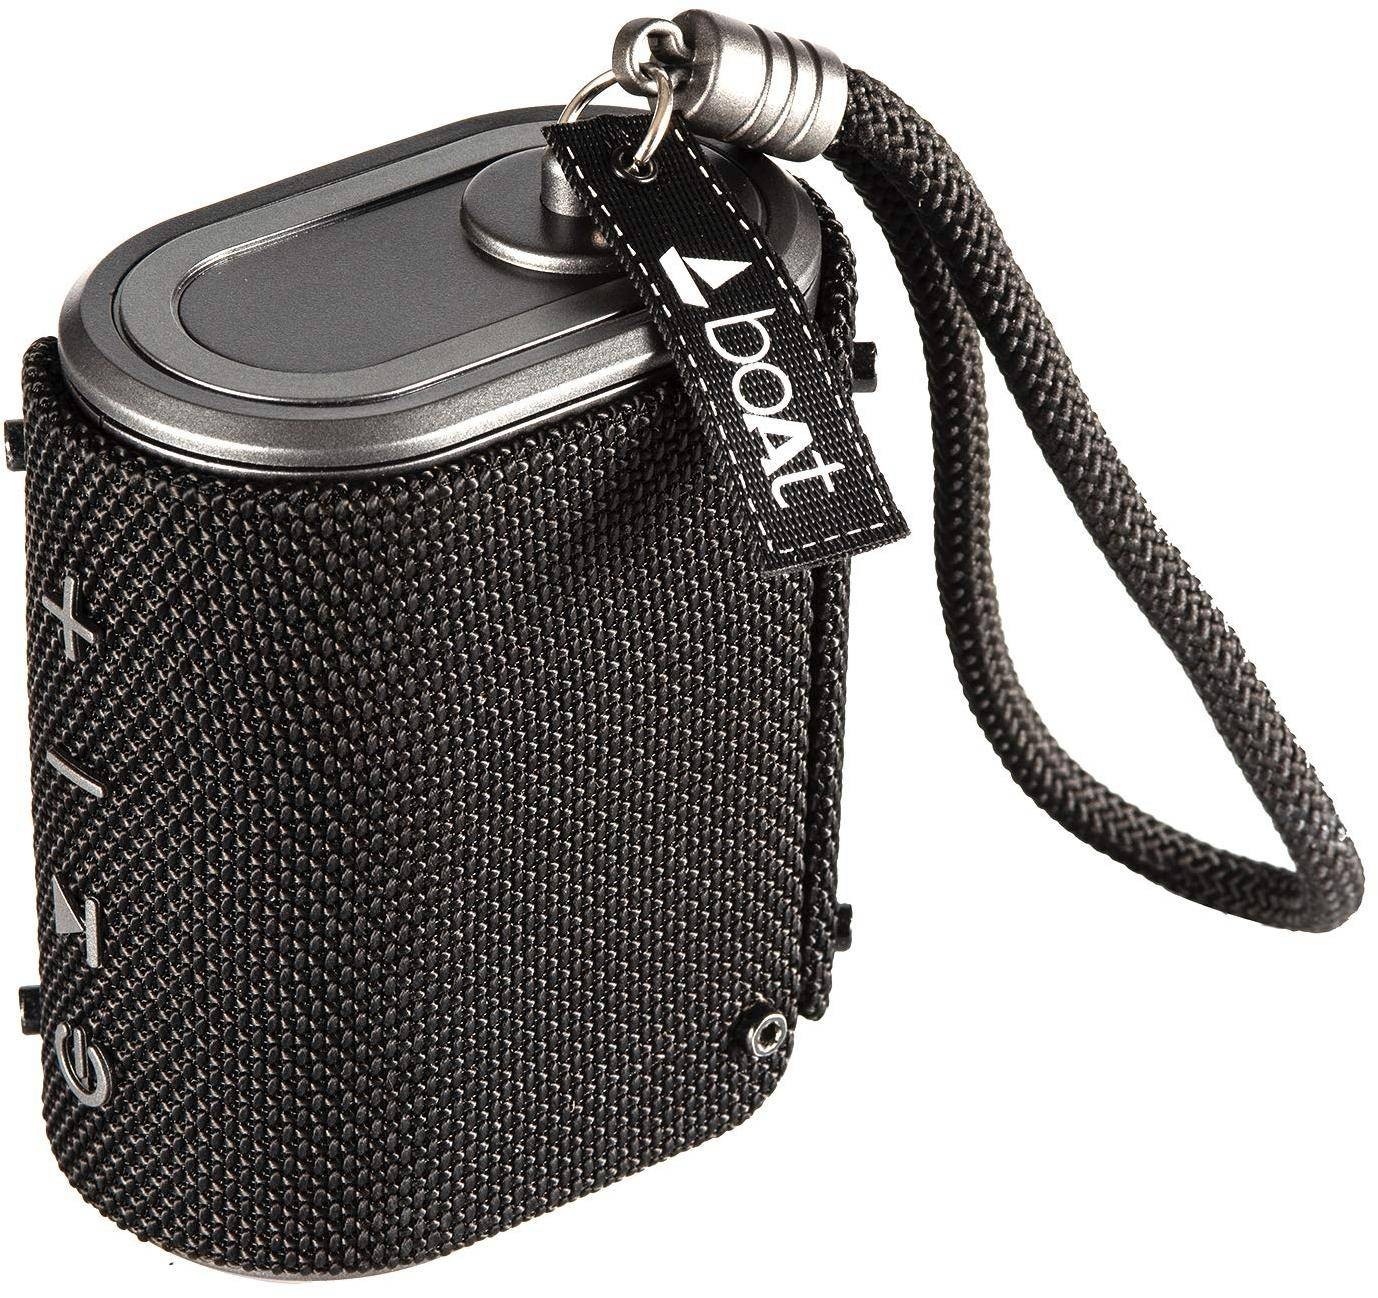 boAt Stone Grenade XL Portable Bluetooth Speakers (Charcoal Black) zoom image